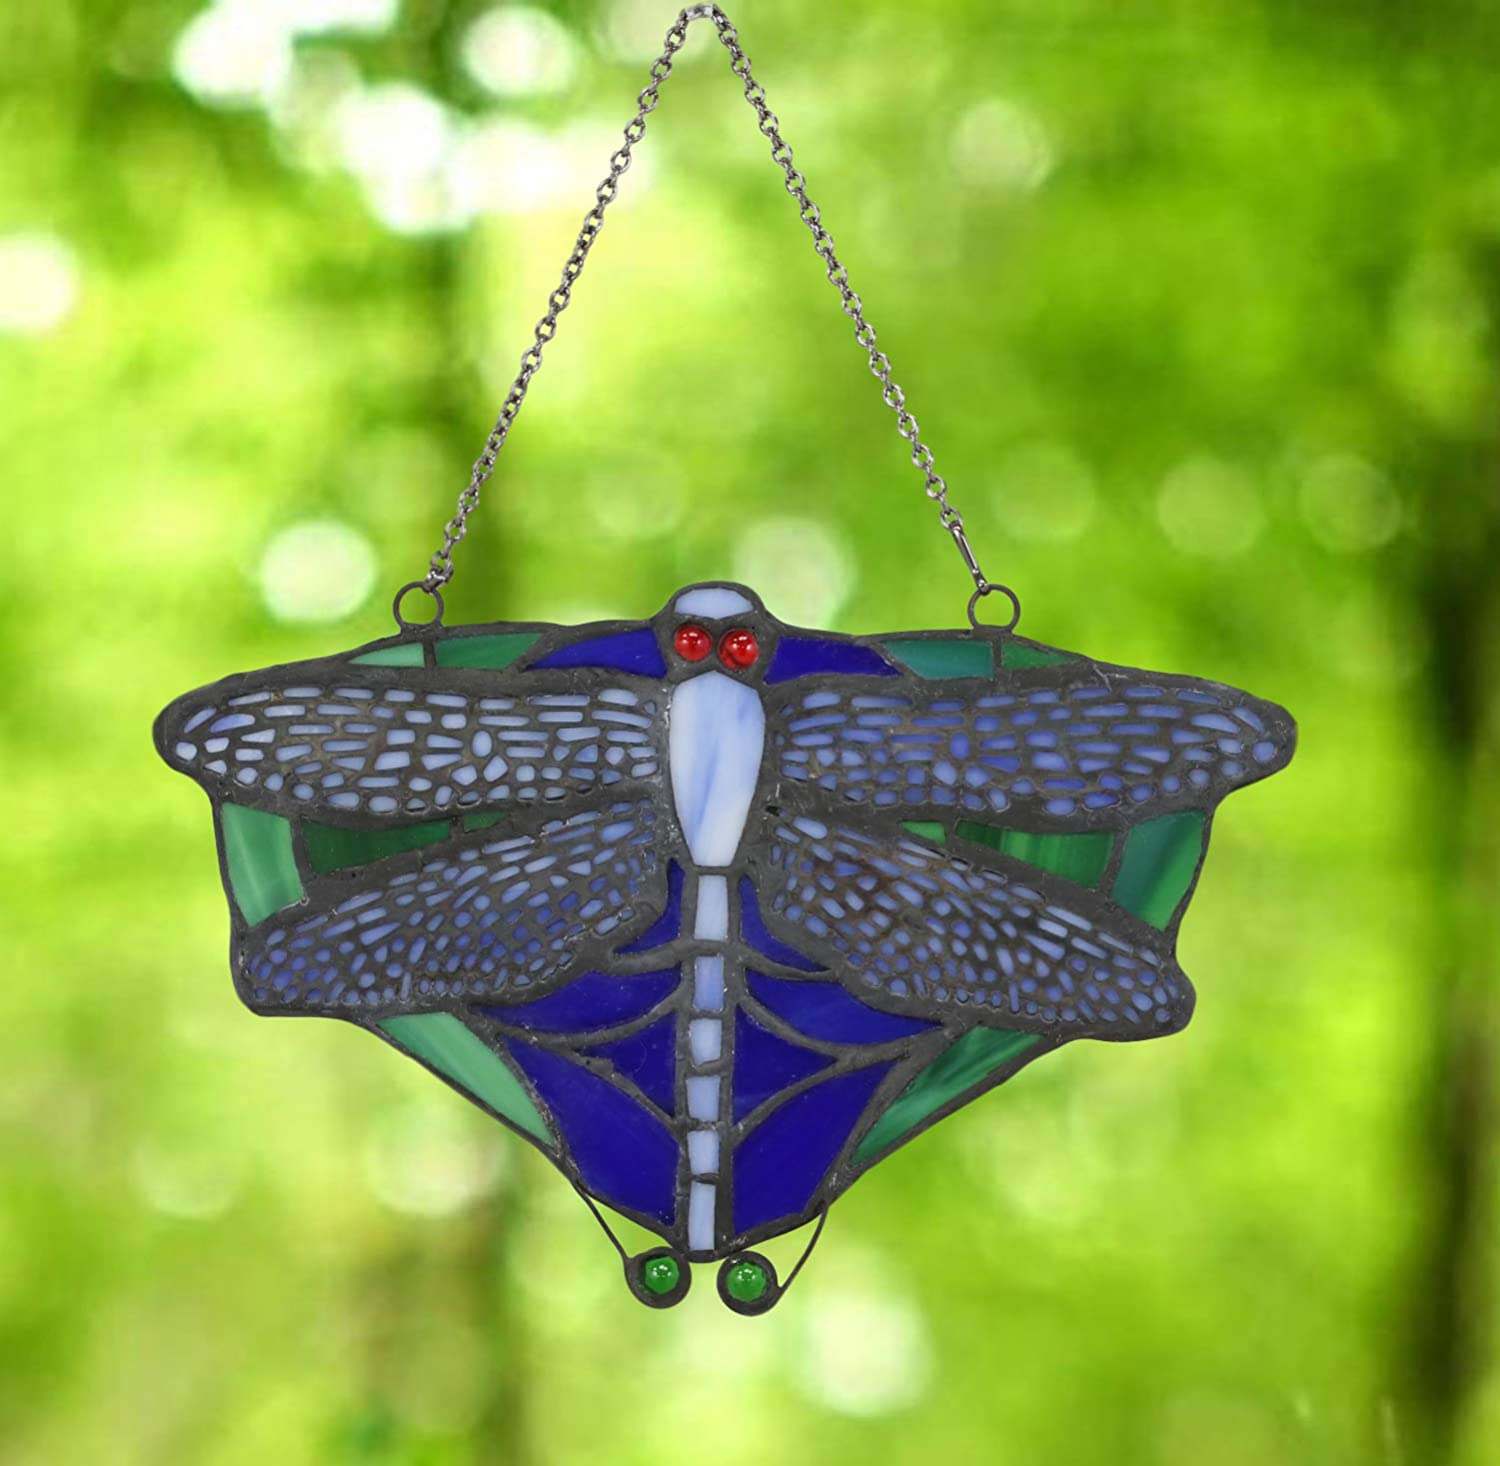 Ebros Louis Comfort Tiffany 7 25 Wide Dragonfly Insect Suncatcher Stained Glass Art Panel Wall Or Window Hanging Decor Sun Catcher Plaque Furniture Decor